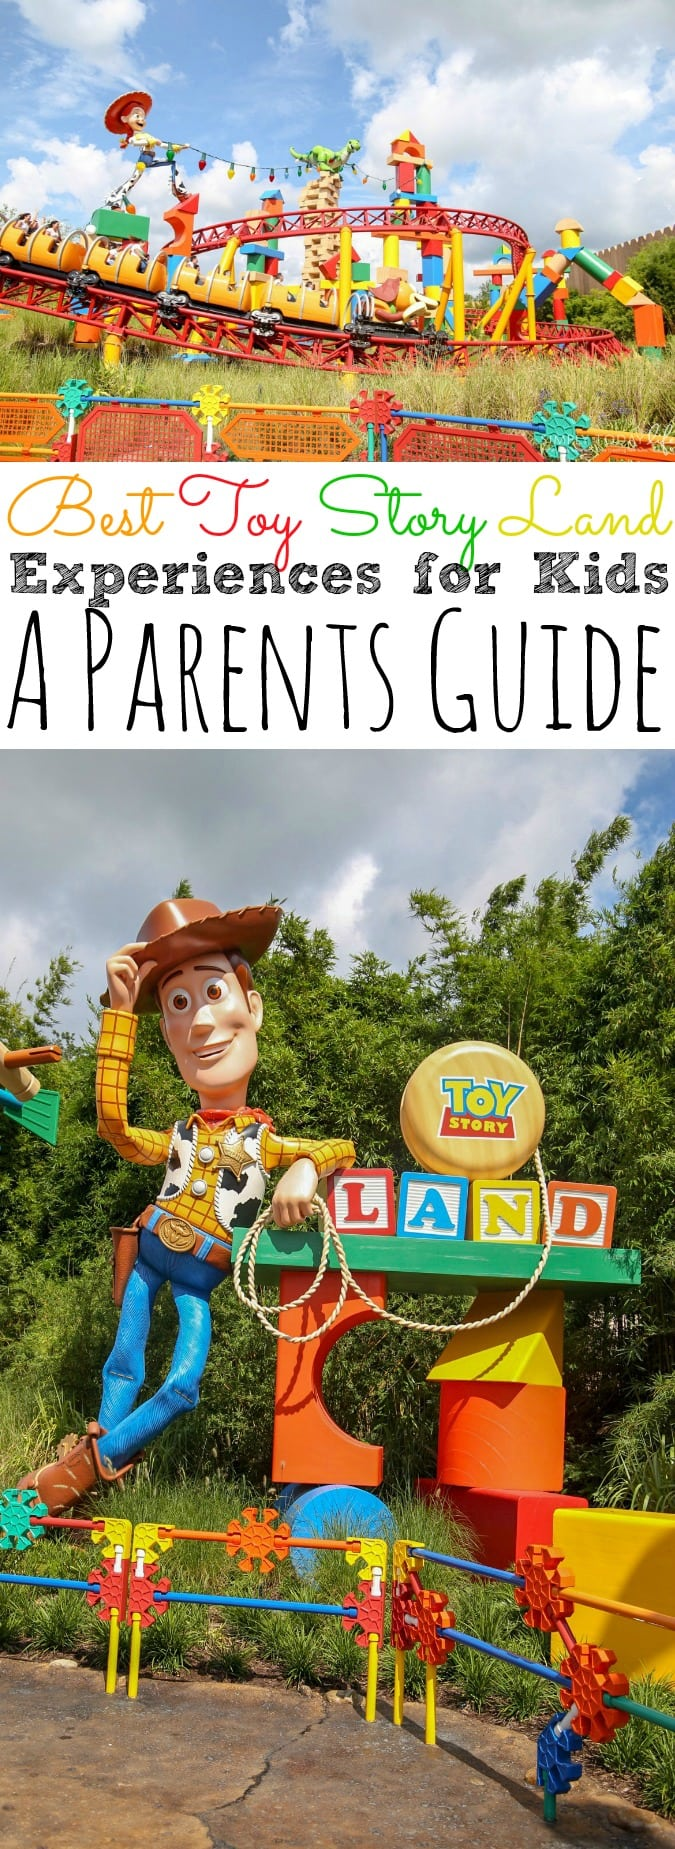 Best Toy Story Land Experiences For Kids